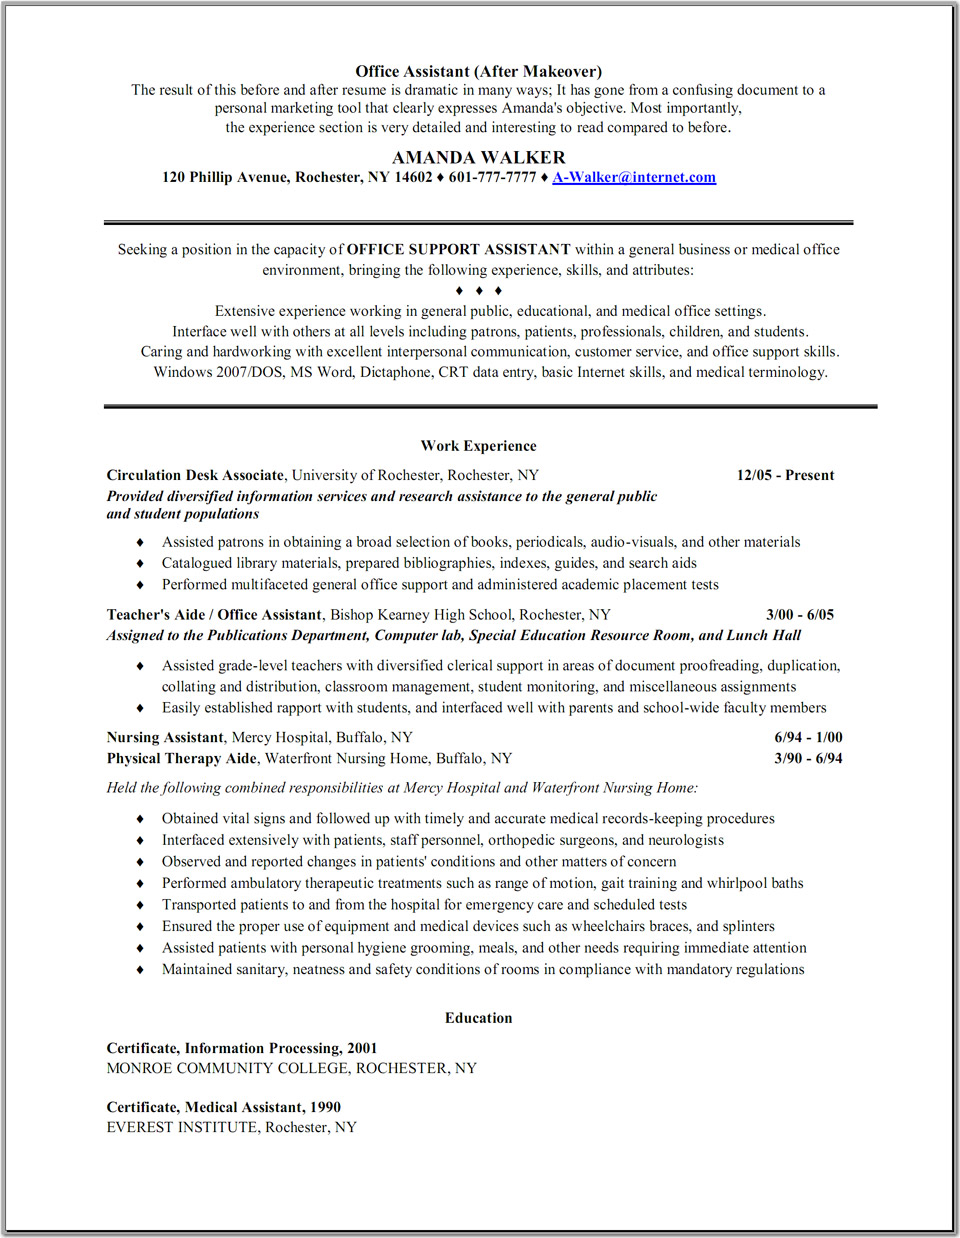 medical administrative assistant resume sample resume for administrative assistant at medical office office assistant amanda walker - Office Assistant Resume Sample